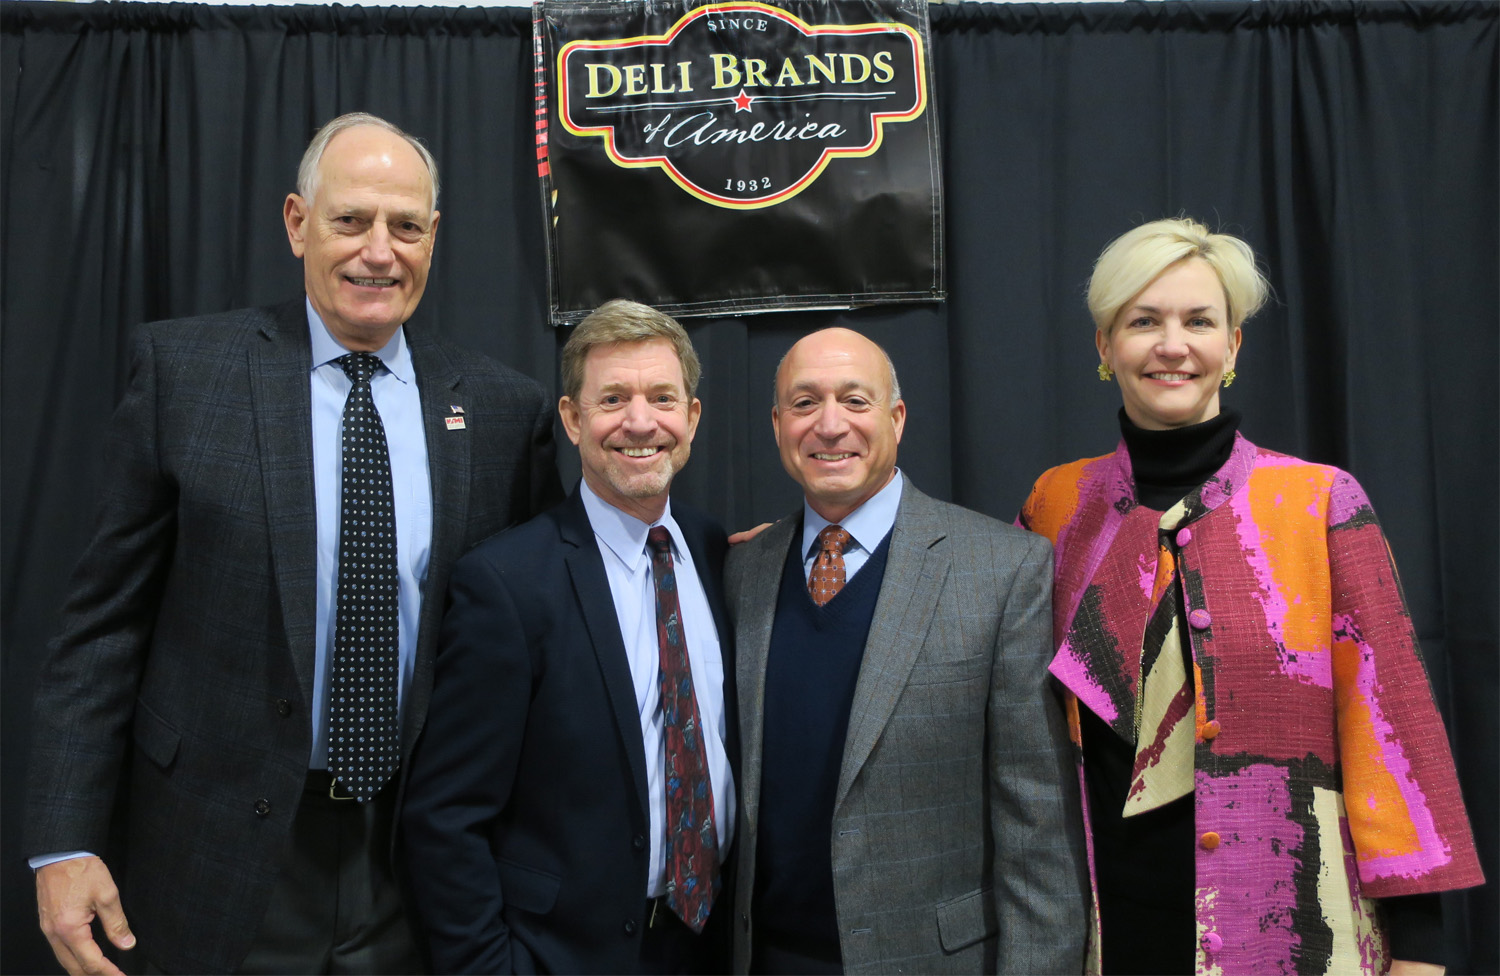 Julie Anna Potts, Barry Carpenter Attend Deli Brands of America Facility Opening.